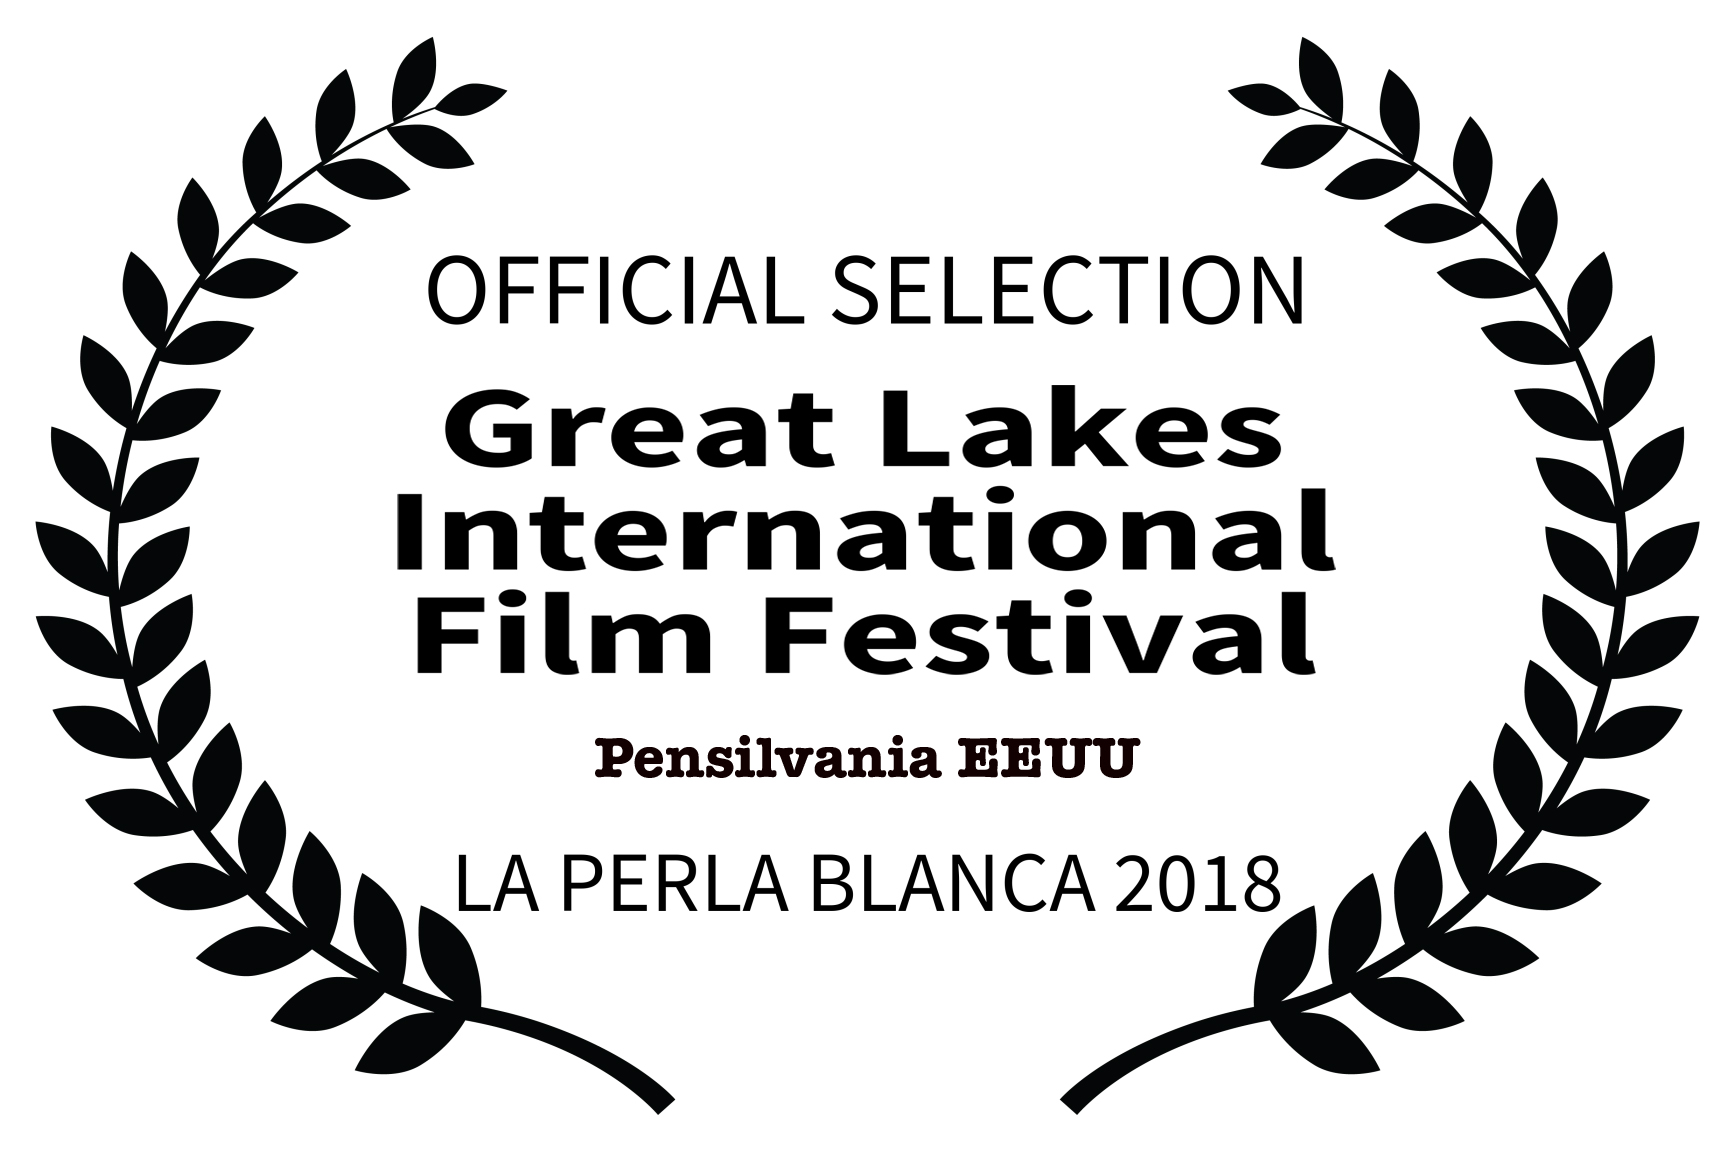 OFFICIAL SELECTION - Great Lakes Interna